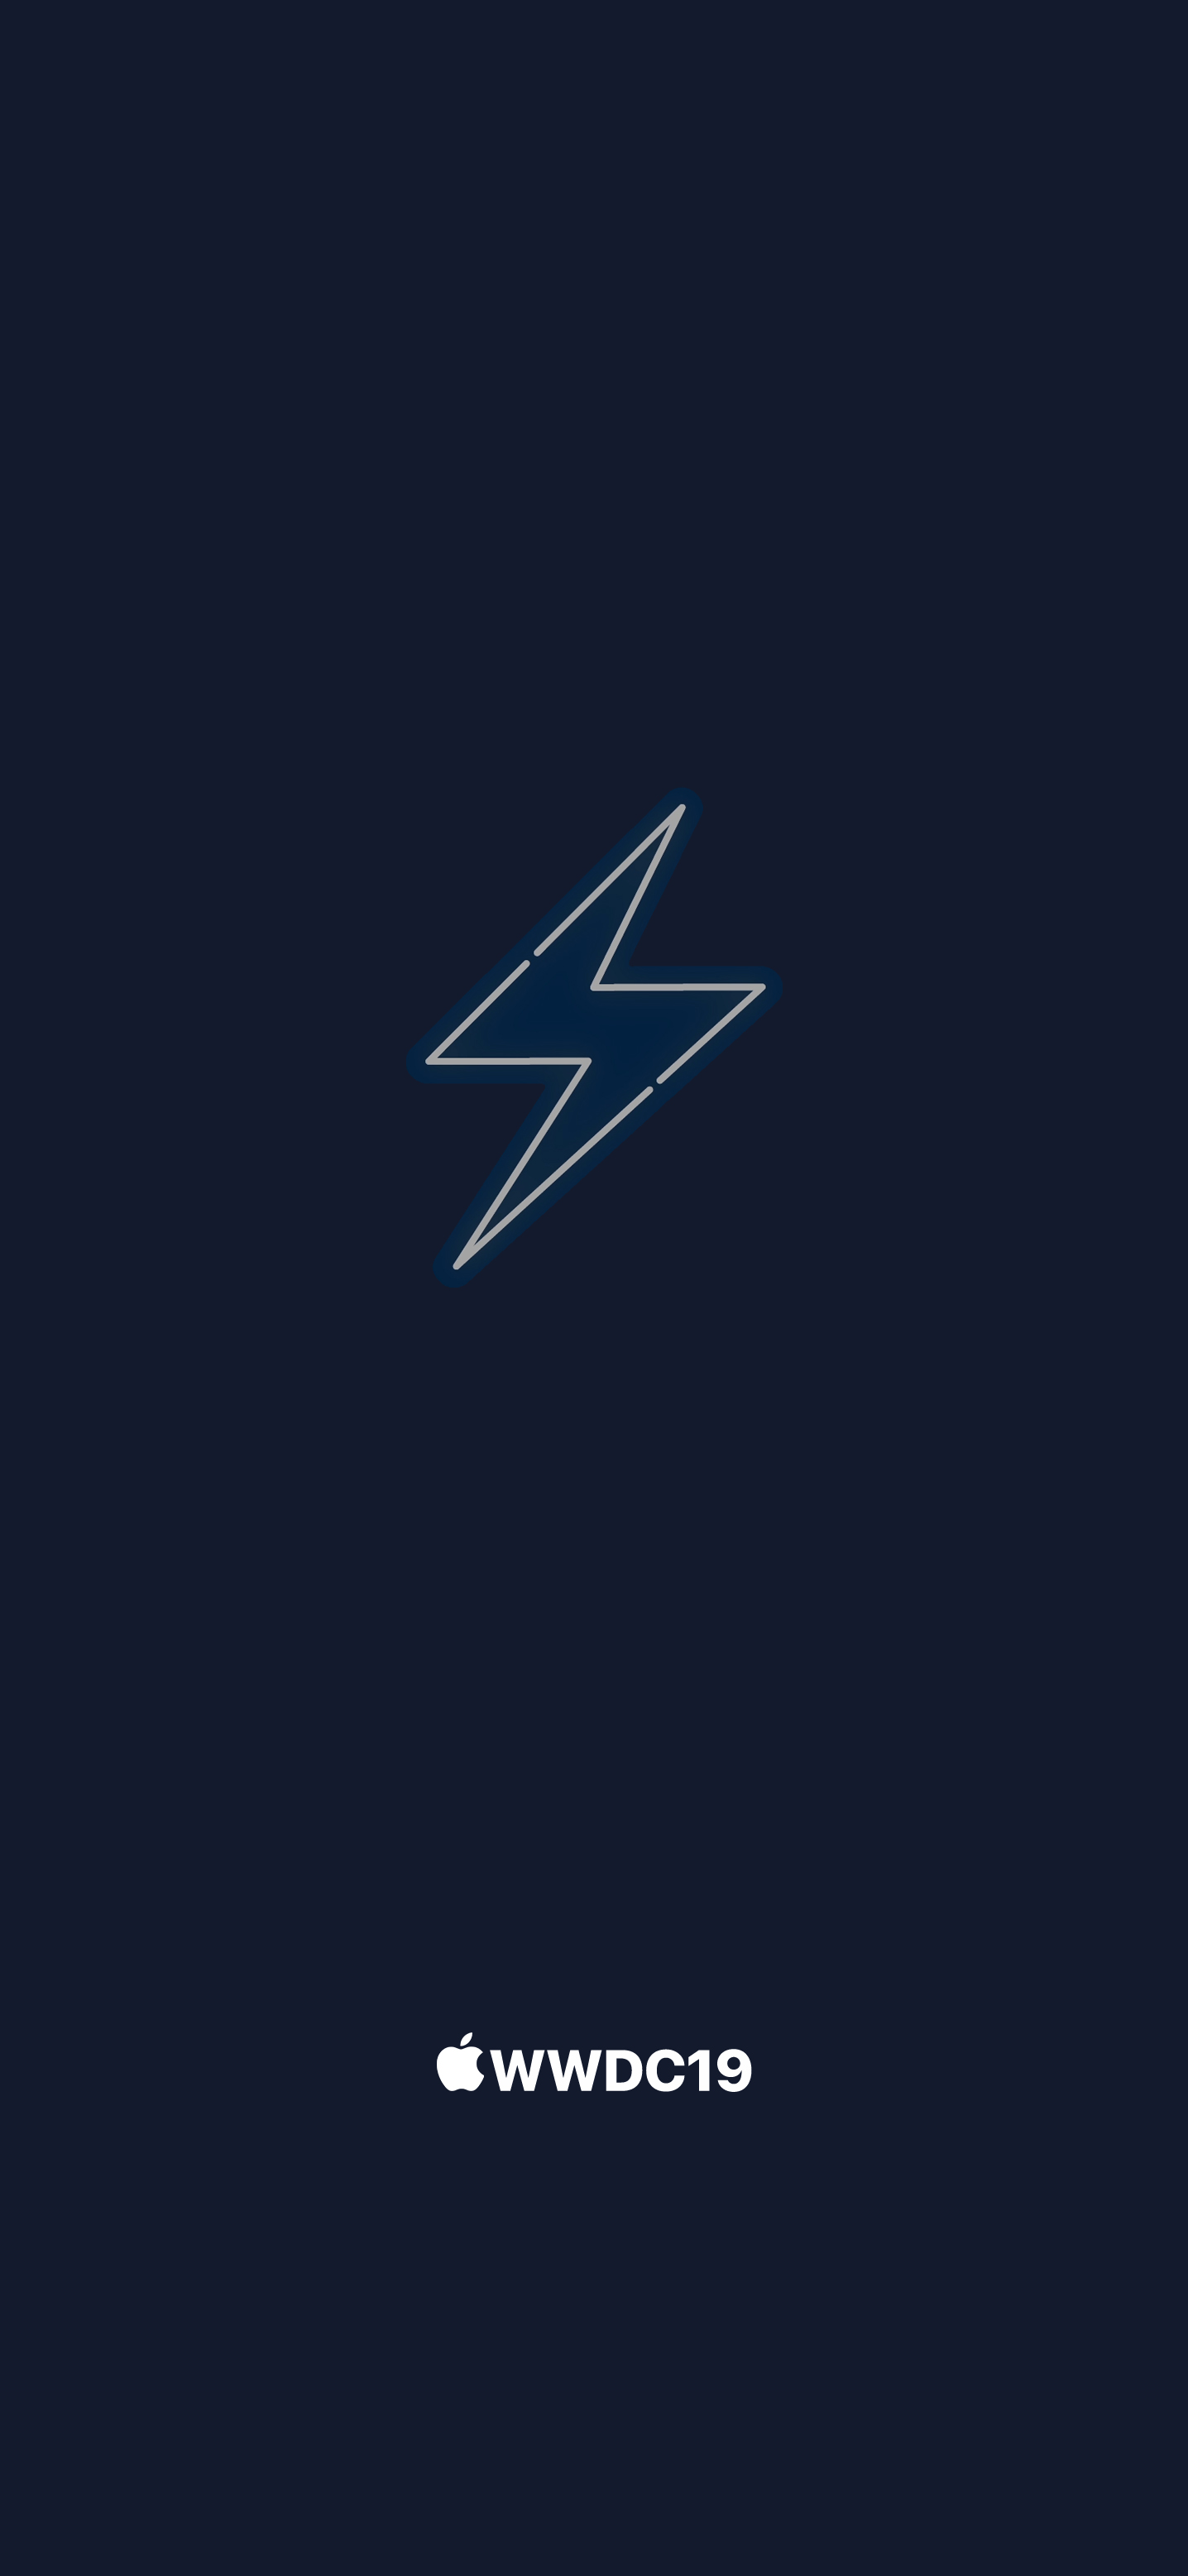 Lighting Bolt Wwdc19 Wallpapers Central